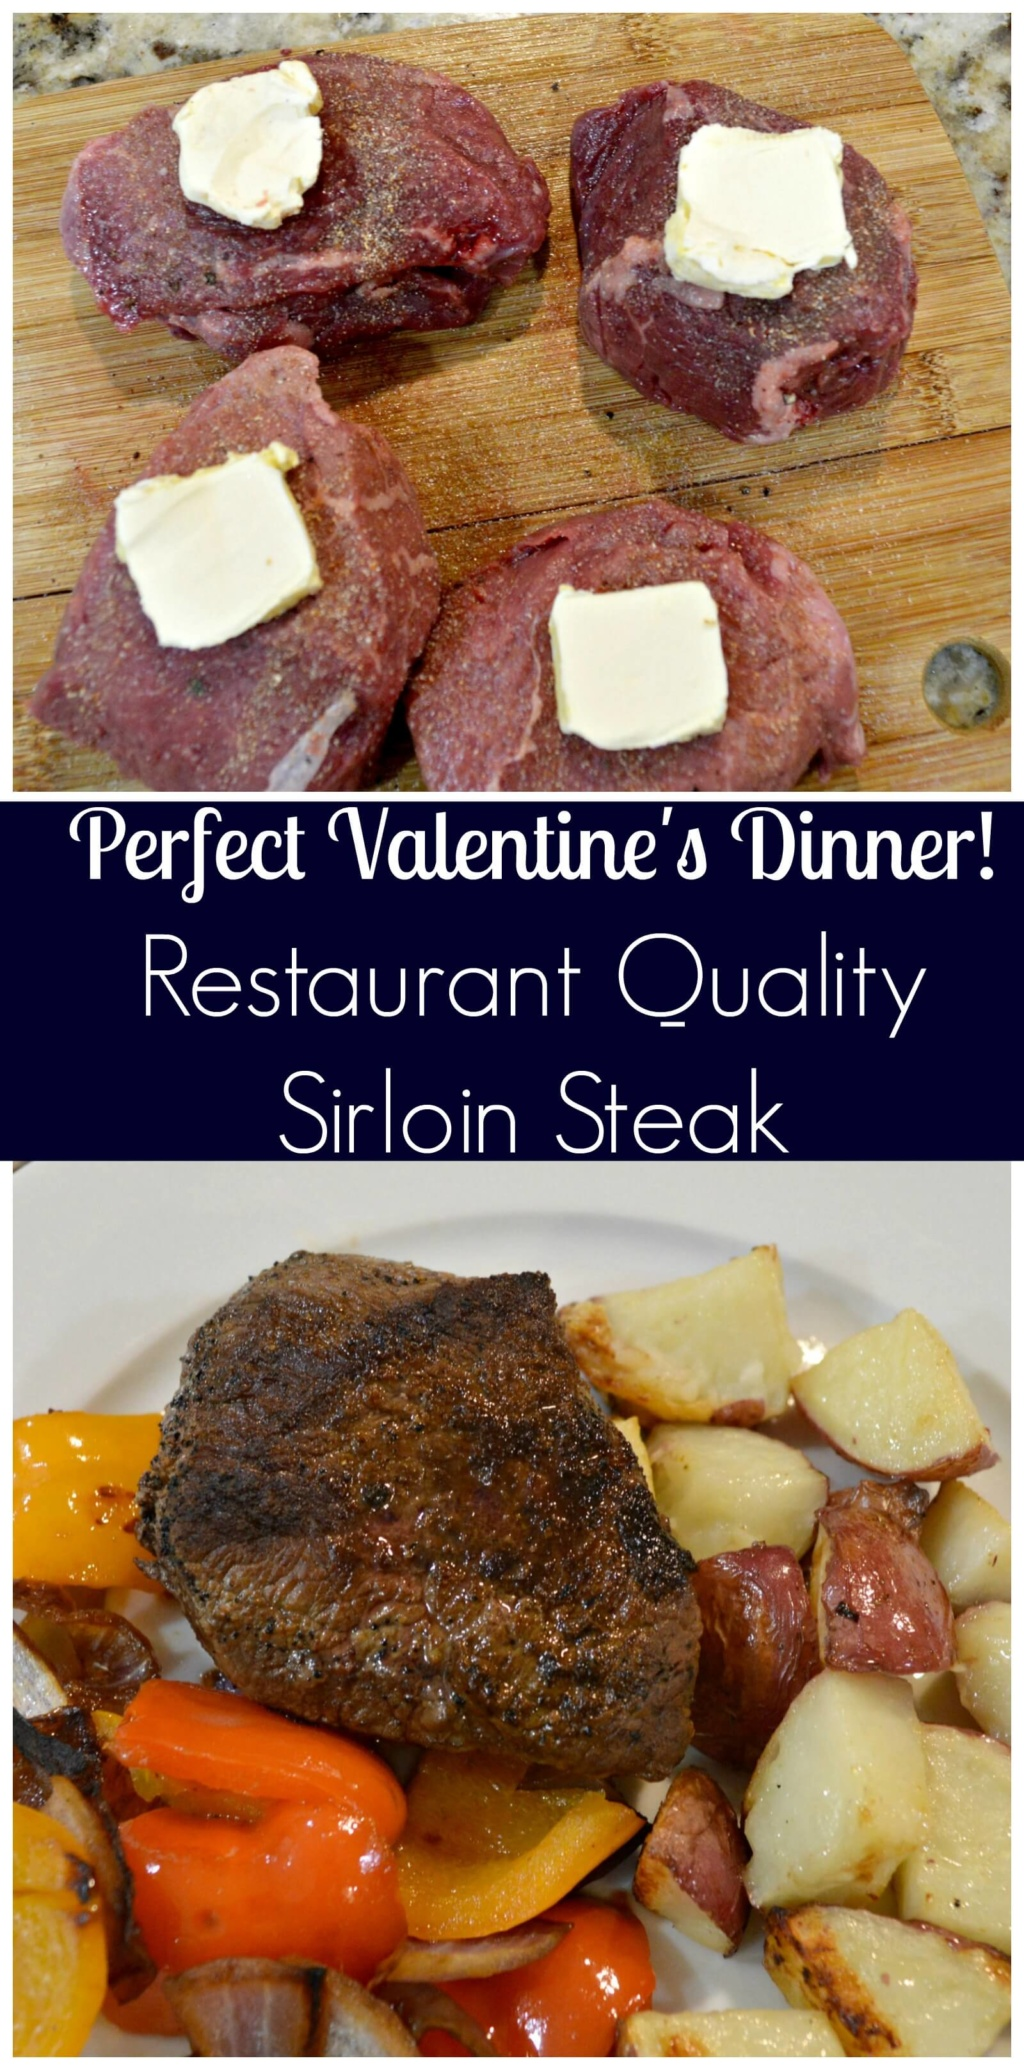 Perfect Valentine's Dinner - Restaurant Quality Sirloin Steak